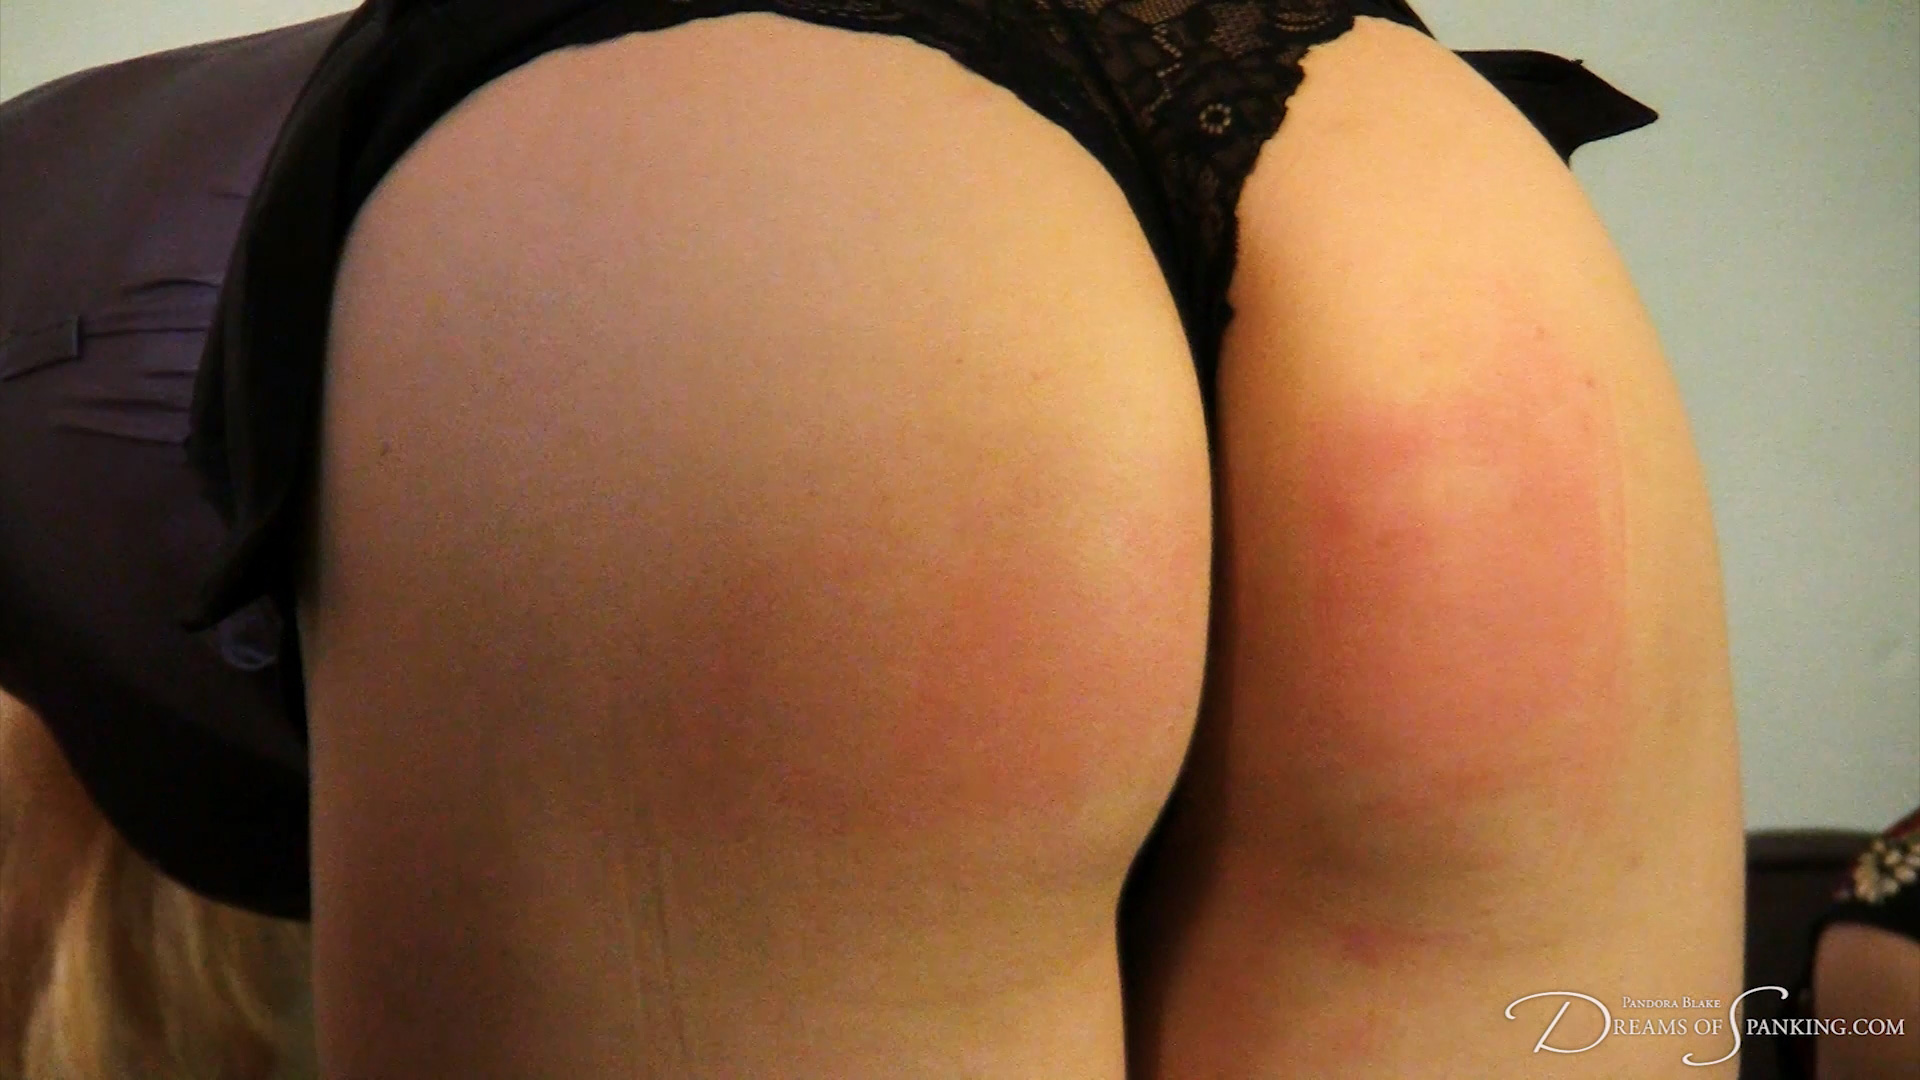 Girl/girl switch spanking with Amelia Jane Rutherford, Pandora Blake and Caroline Grey